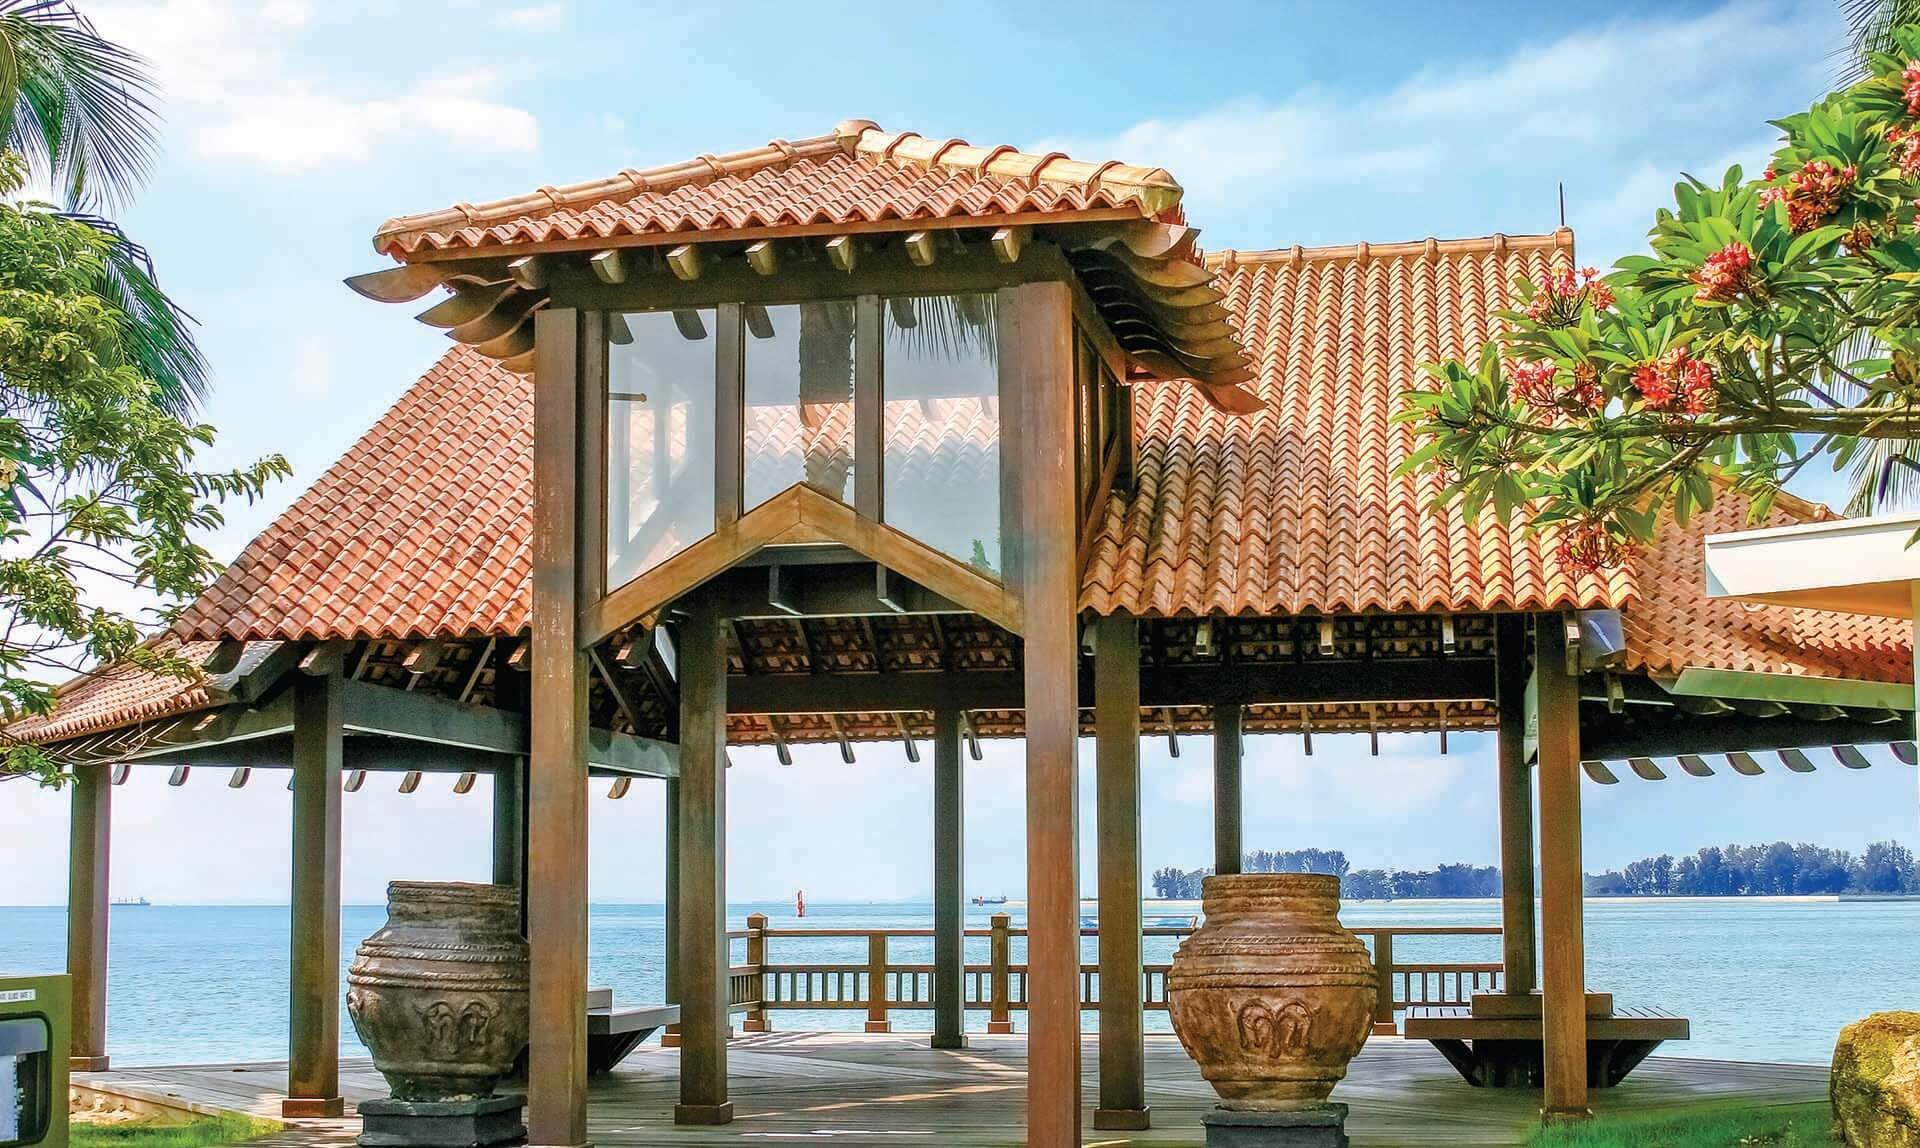 Roof Tiles Malaysia   Yongyang - Pioneer in Roofing and Solar Energy